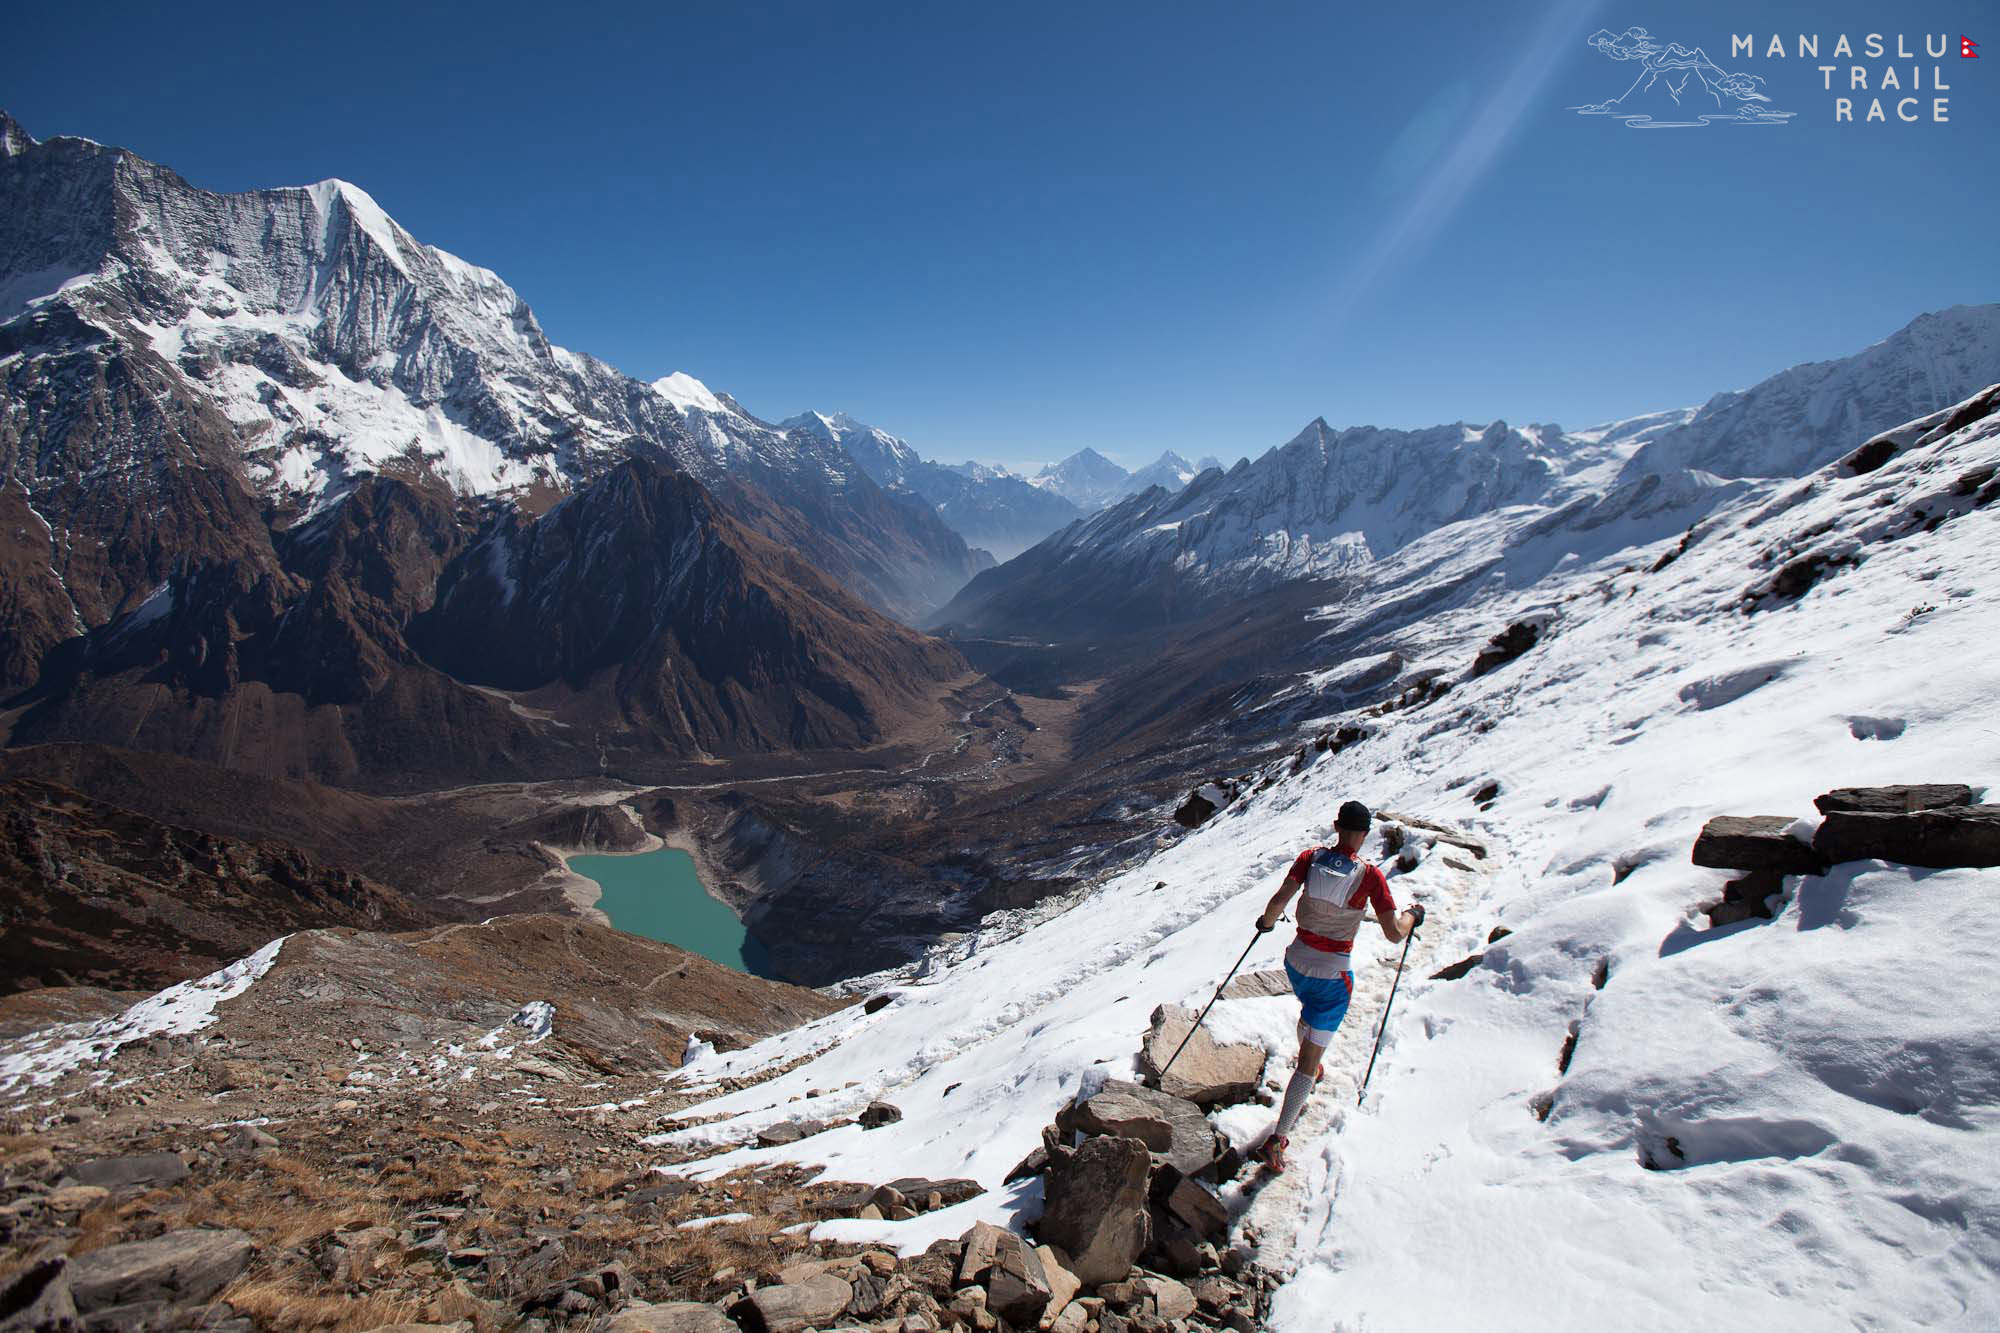 manaslu trail race